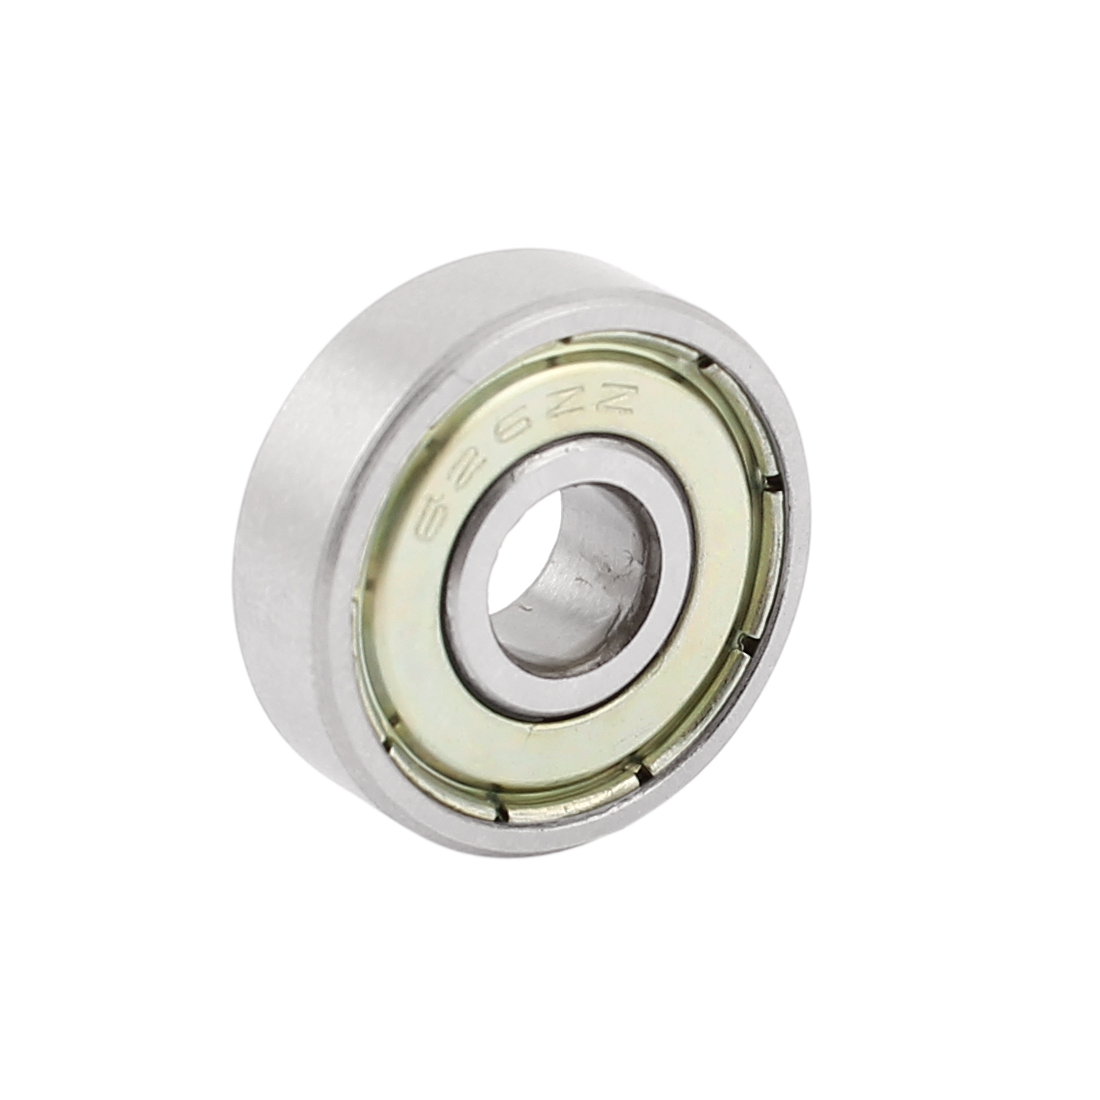 626ZZ 6mm x 19mm x 6mm Double Metal Shield Deep Groove Ball Bearing